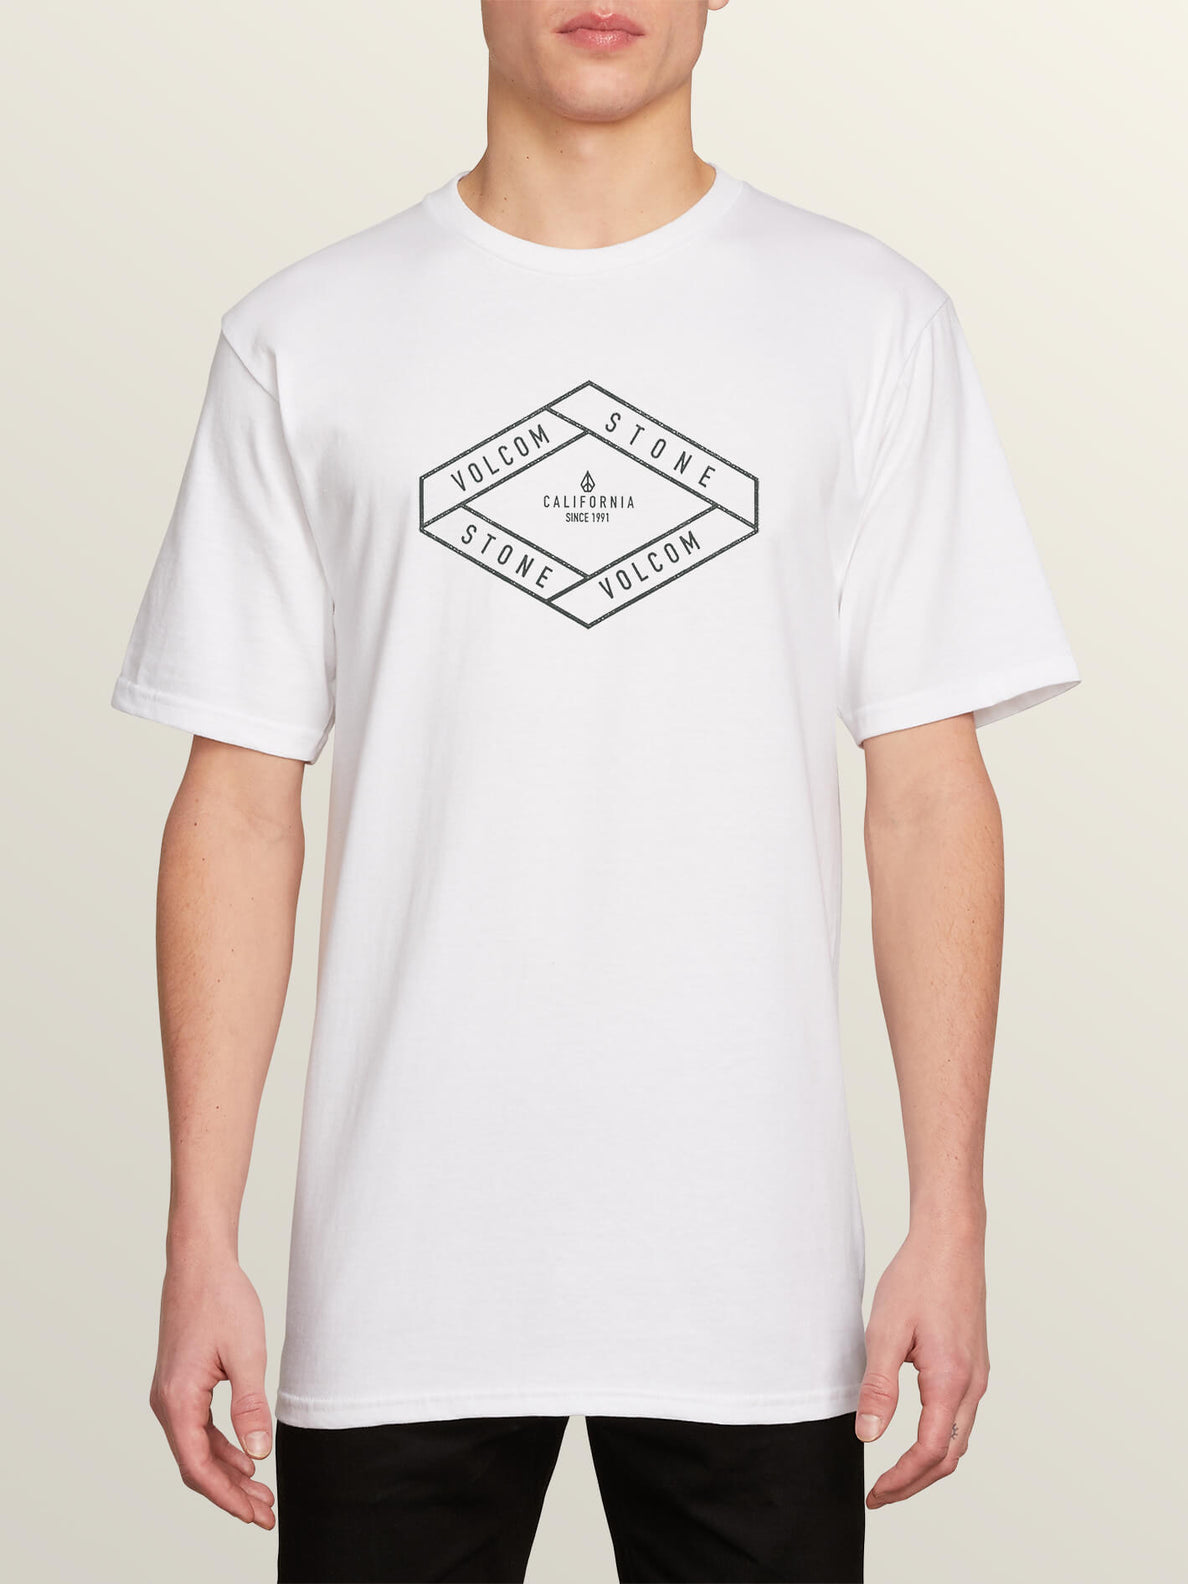 Post It Cali Short Sleeve Tee In White, Front View